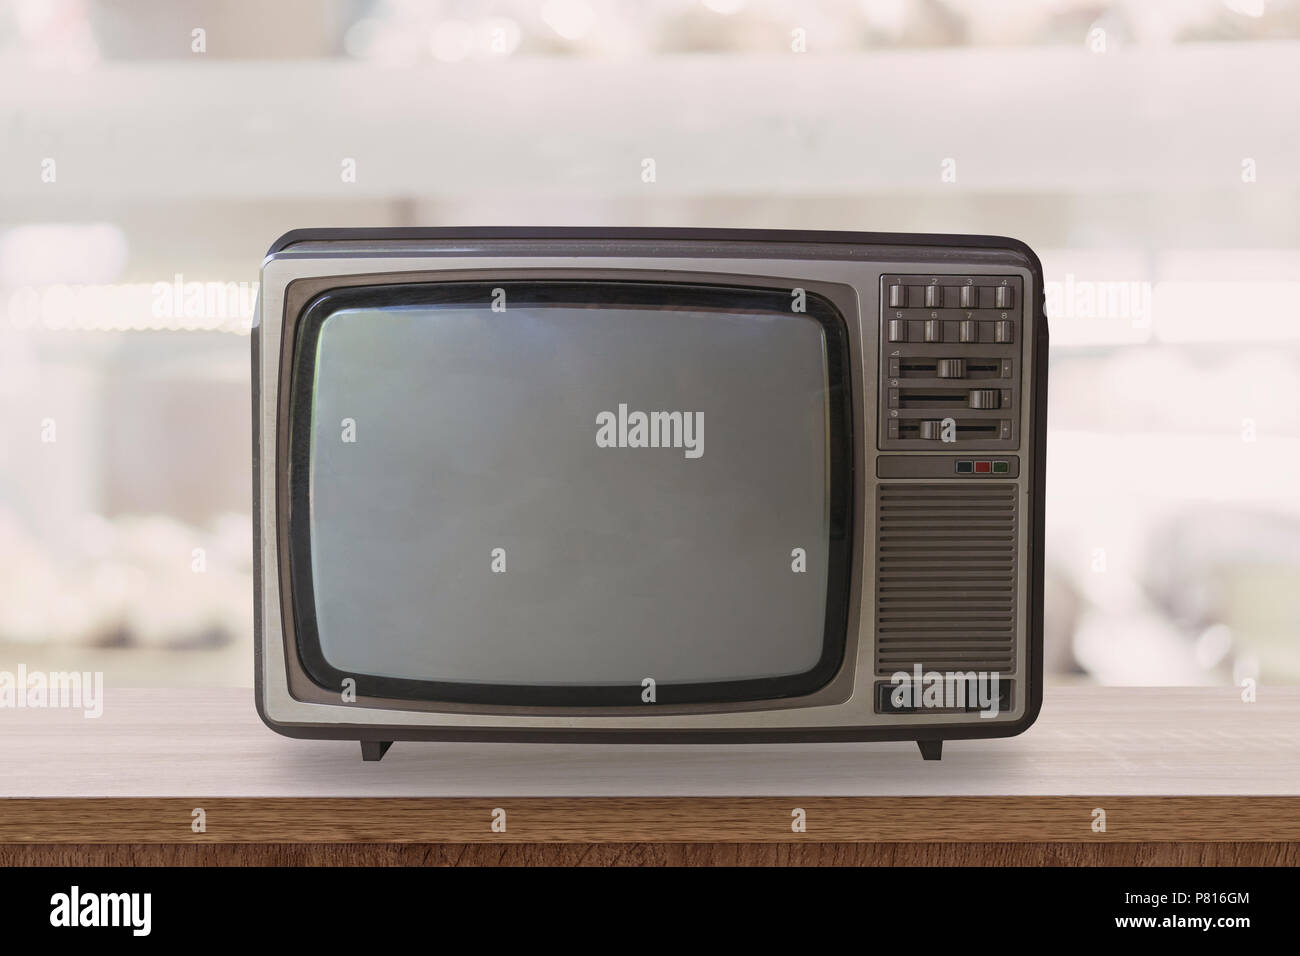 Vintage TV box on wooden table with blur background. - Stock Image